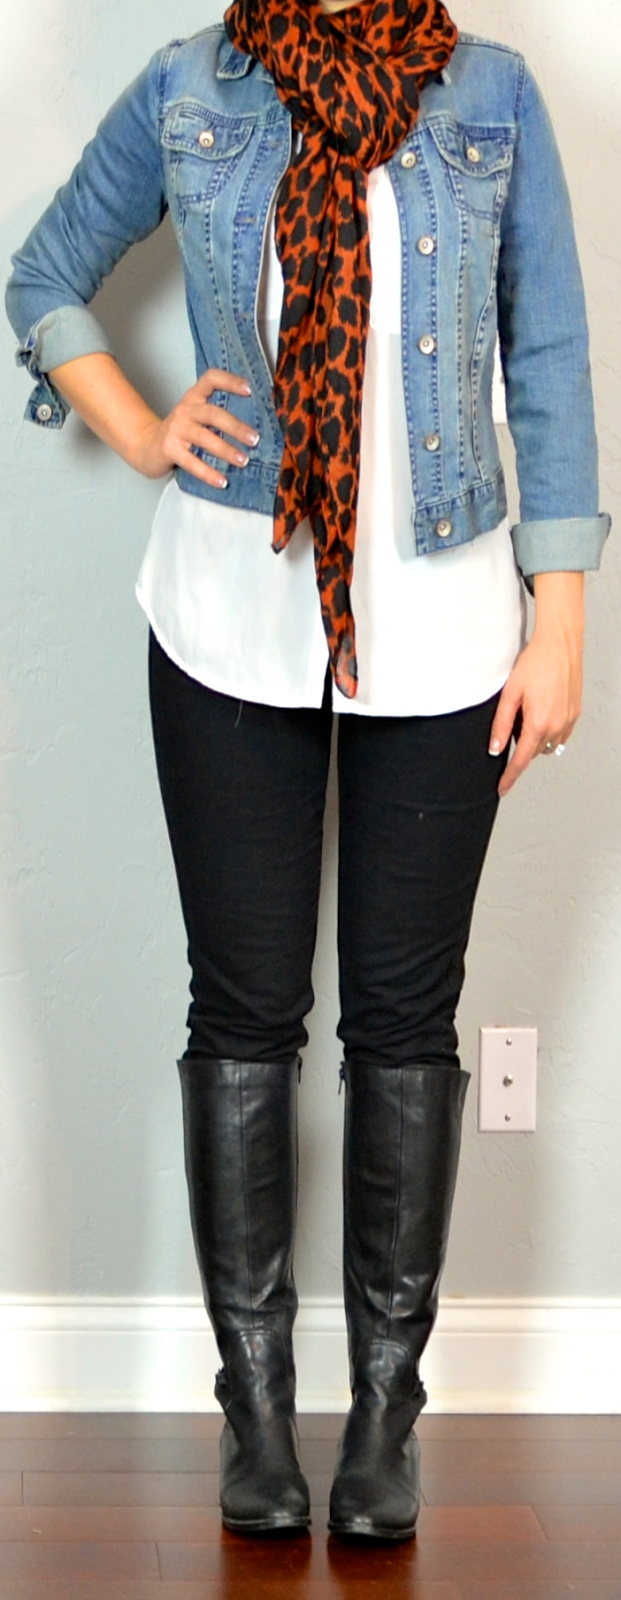 Outfit post white blouse black skinny jeans jean jacket leopard scarf